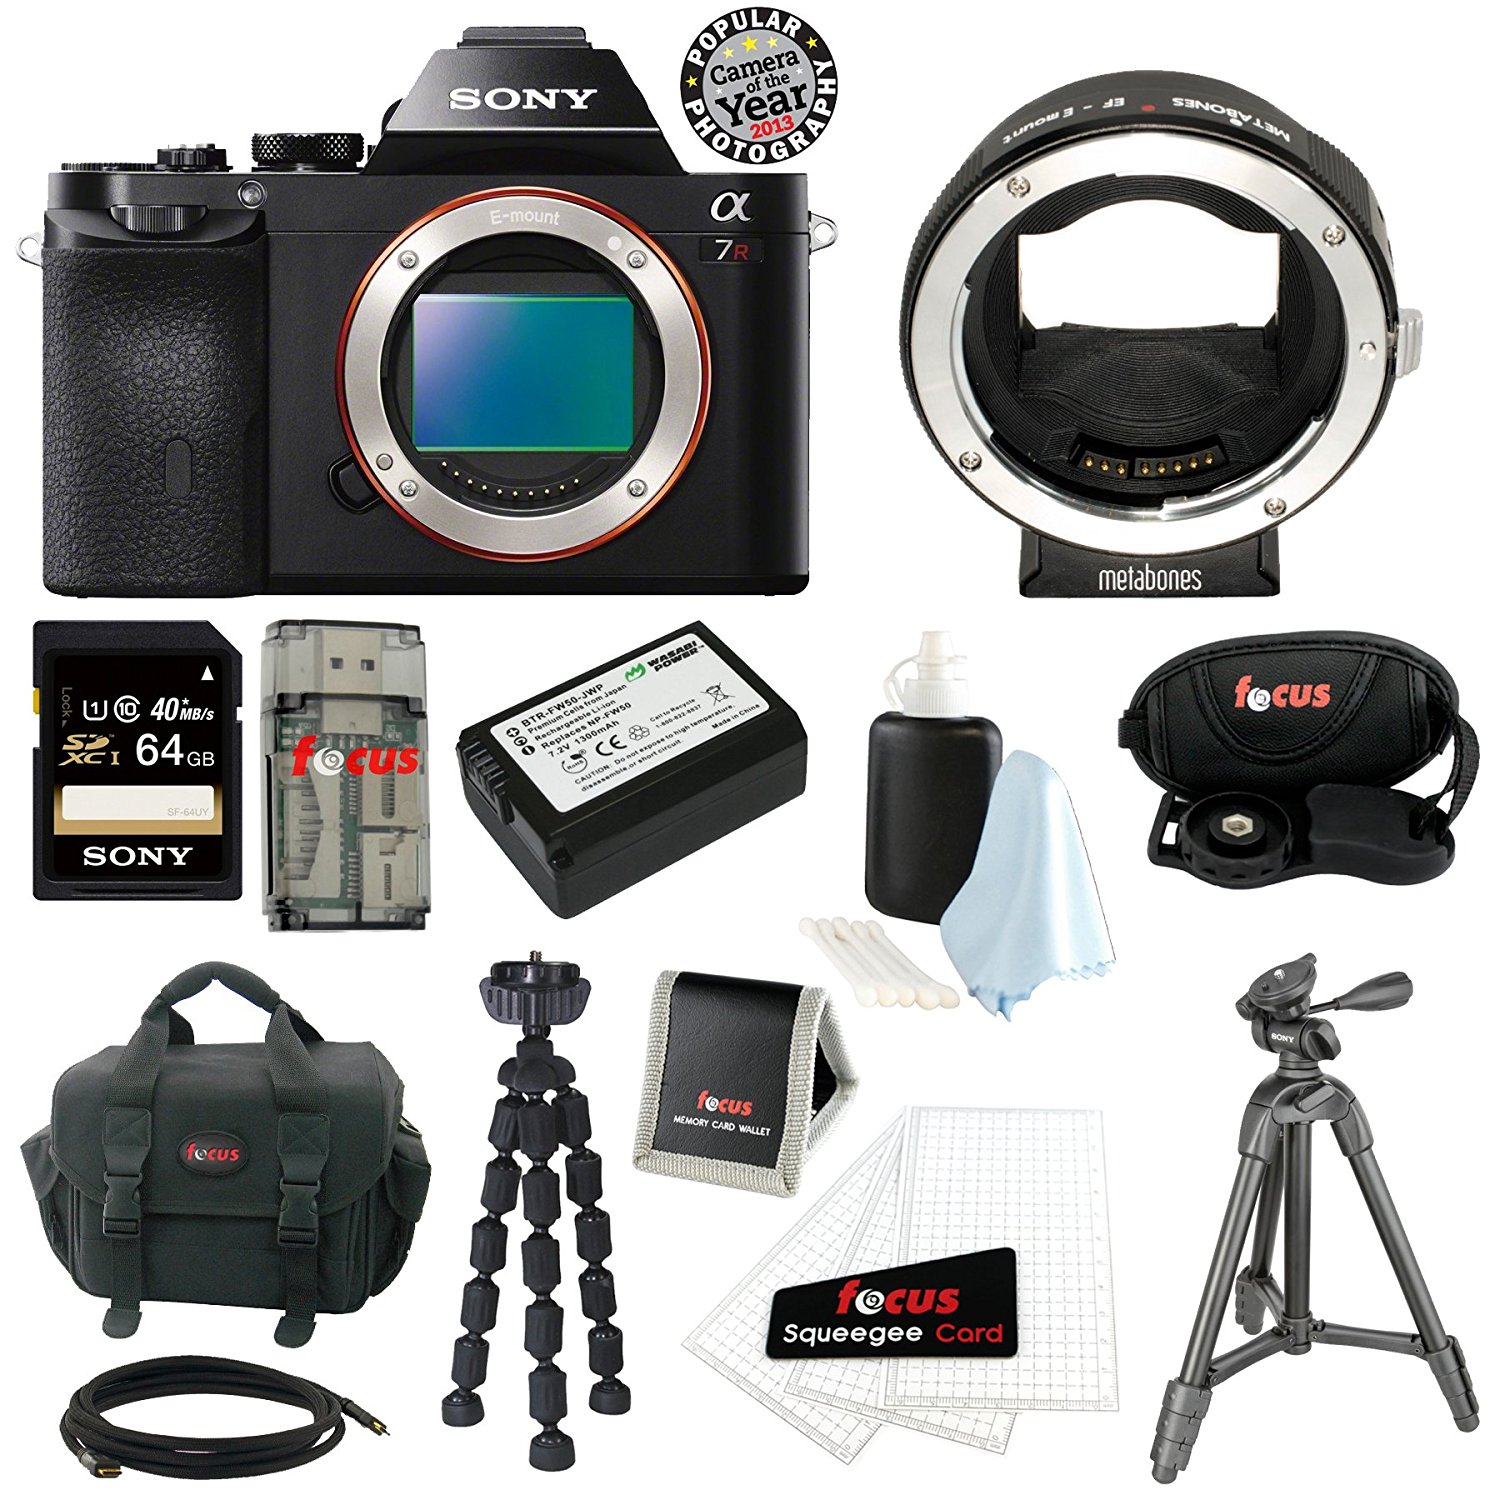 Sony ILCE7R/B ILCE7RB 36.3 MP a7R Full-Frame Interchangeable Digital Lens Camera (Body Only) with Metabones Canon EF Lens to Sony NEX Smart Adapter(Mark III) + Sony 64GB SD Card + Sony Case + Wasabi Power Replacement NP-FW50 Battery + Accessory Kit